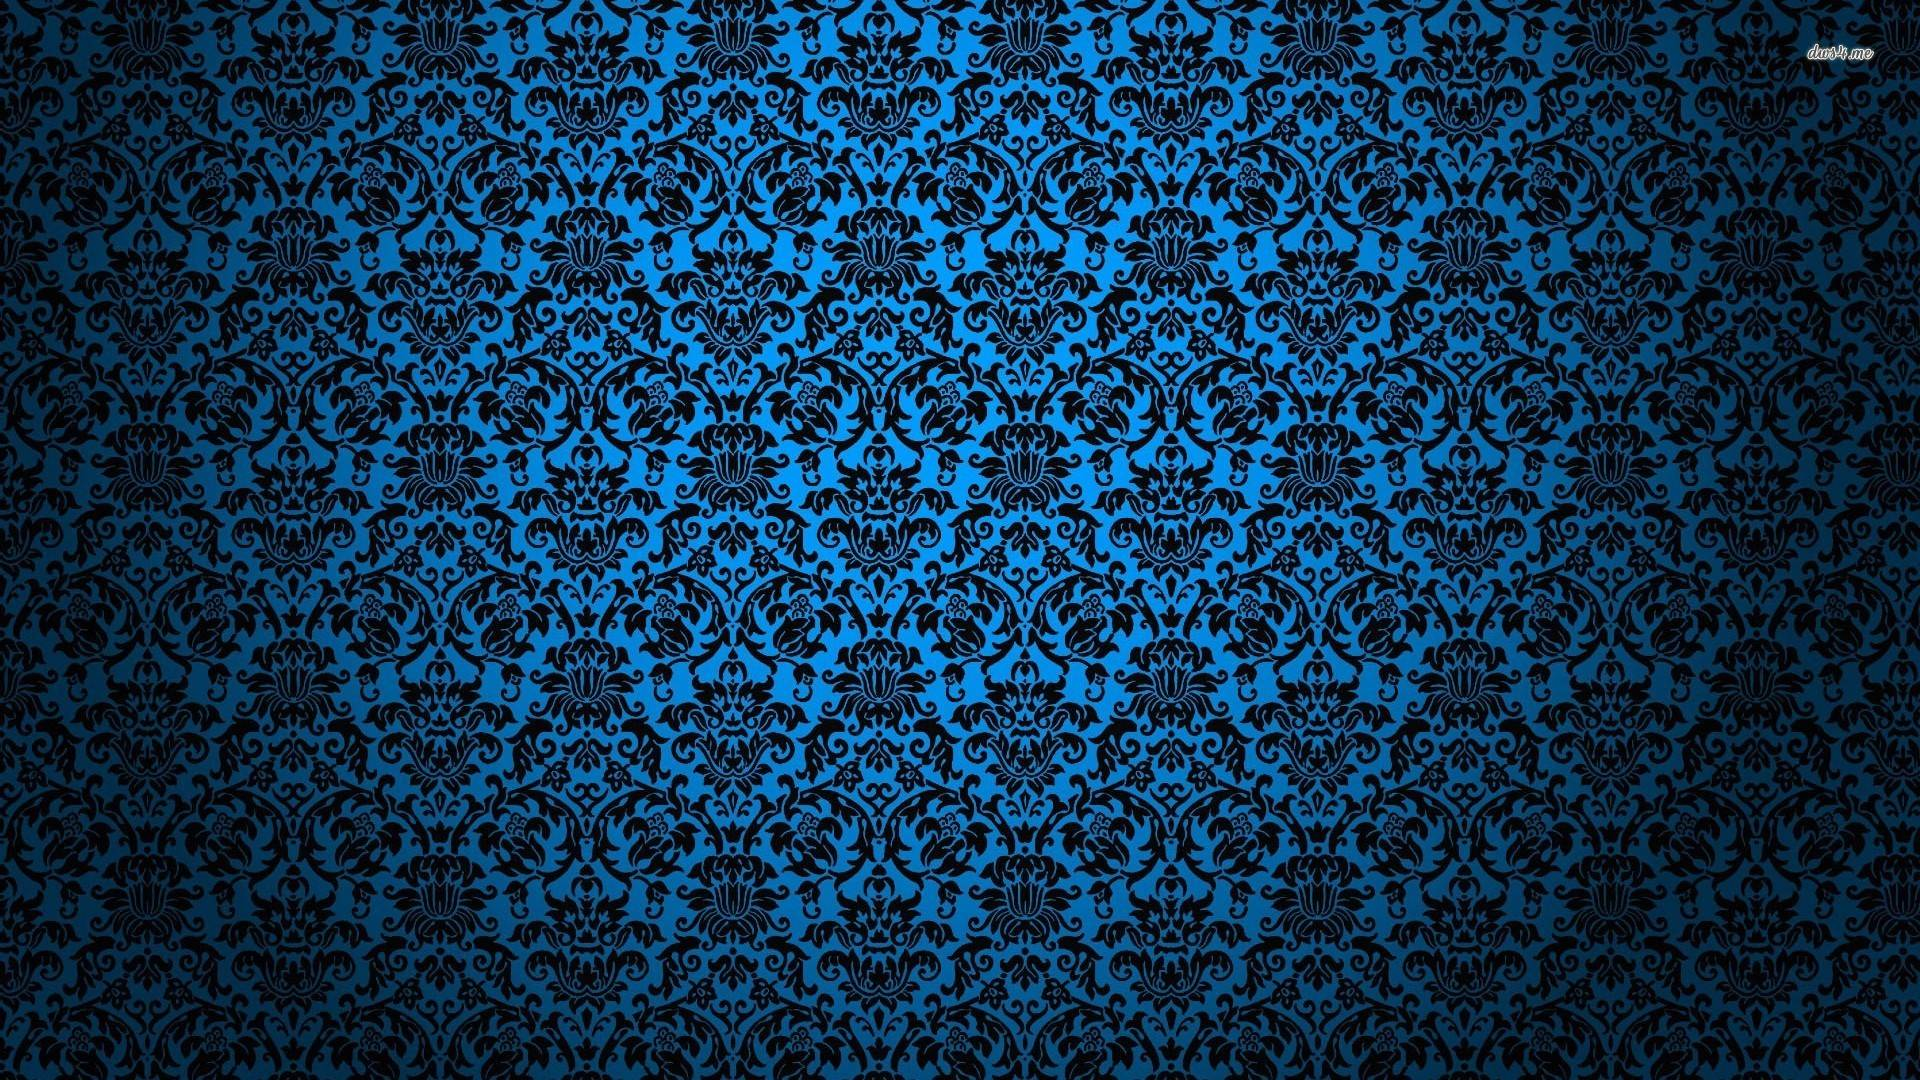 HD Pattern Wallpapers - Top Free HD Pattern Backgrounds